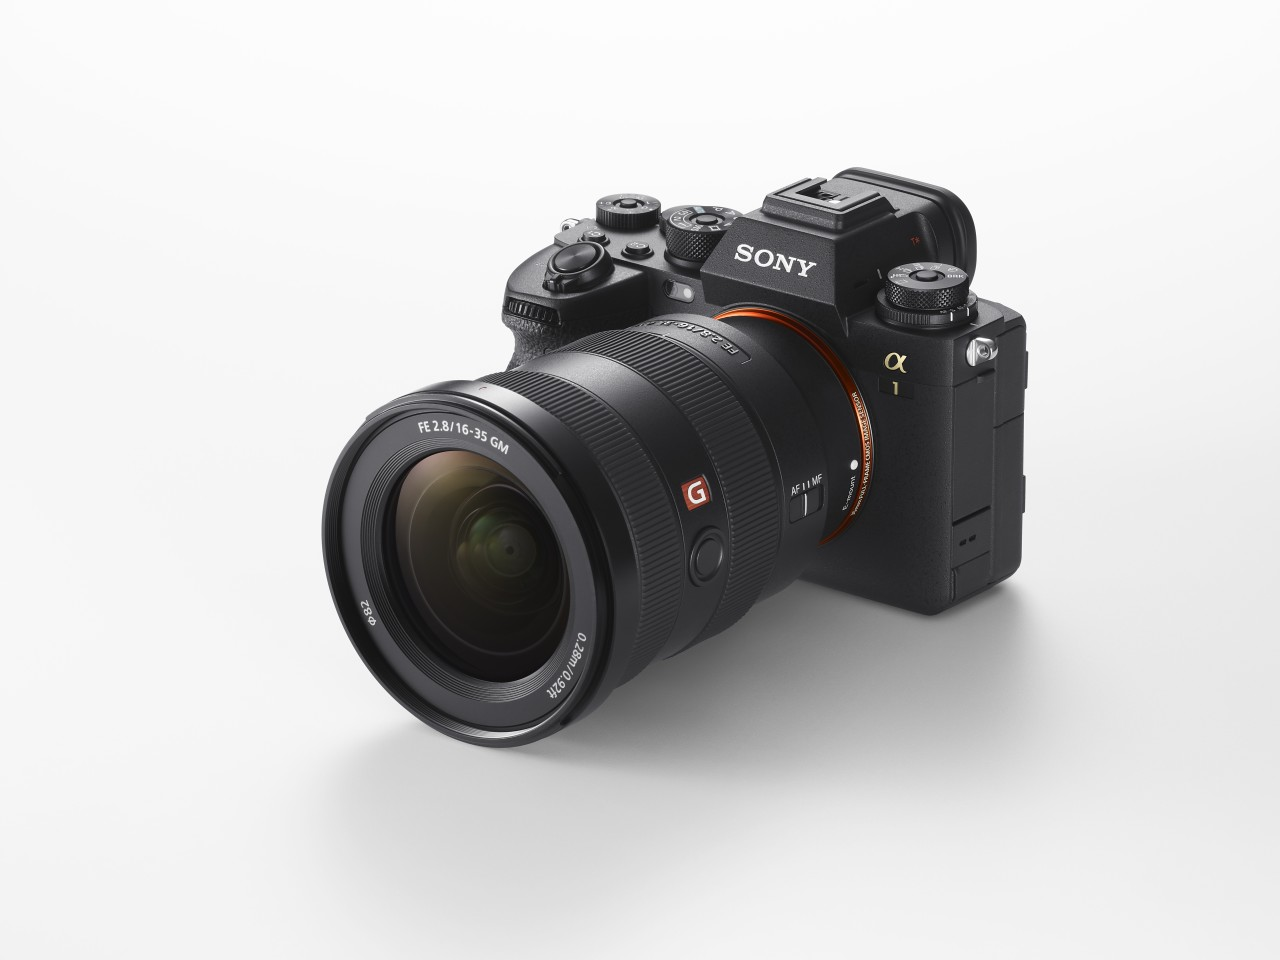 The Alpha 1 is capable of 30 fps continuous stills shooting and 8K/30p video recording